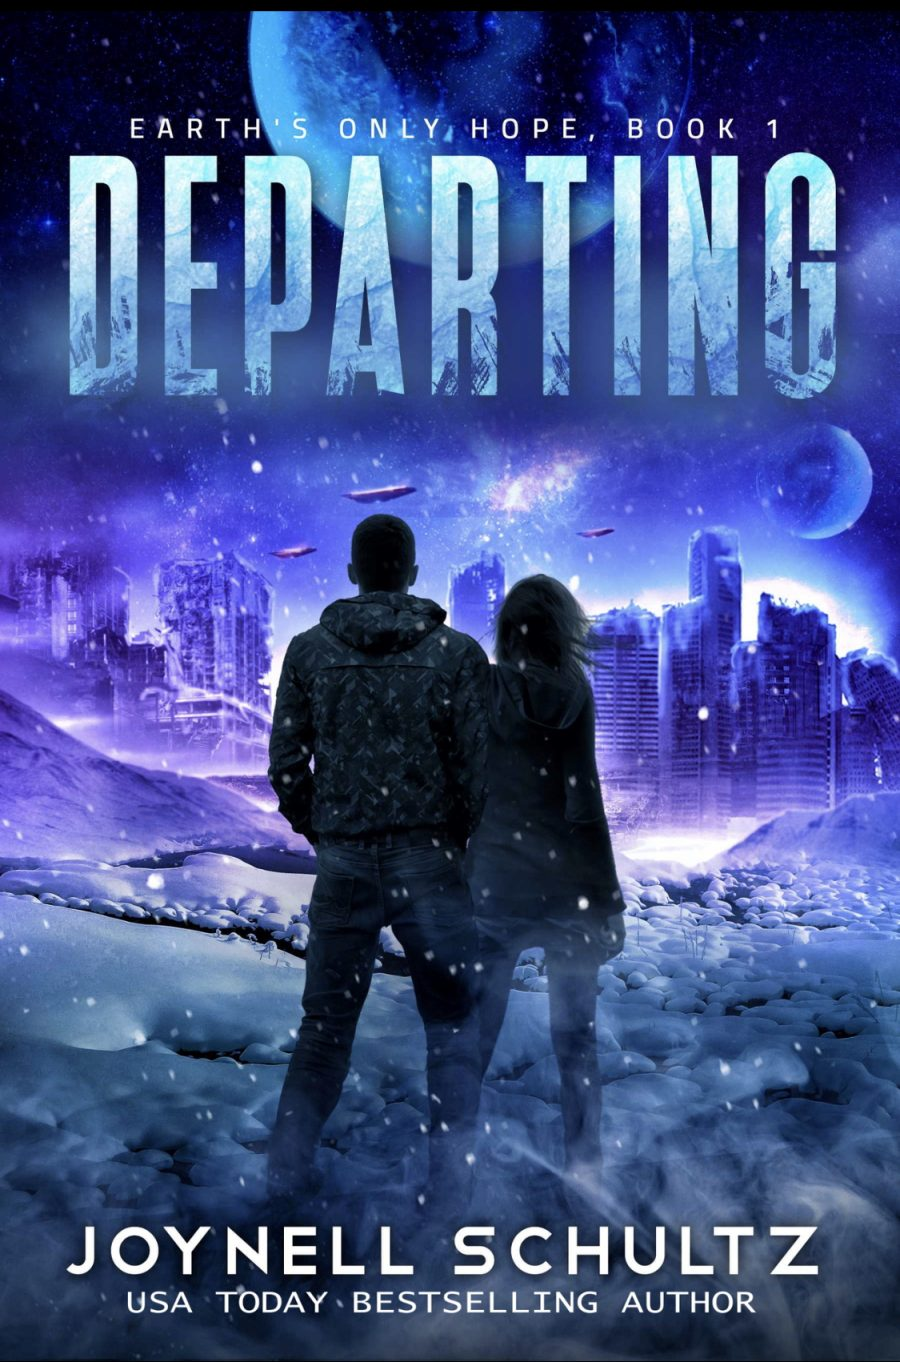 Departing (Earth's Only Hope - Book 1) by Joynell Schultz - A Book Review #BookReview #SciFi #ScienceFiction #4Stars #Romance #Adventure #KindleUnlimited #KU